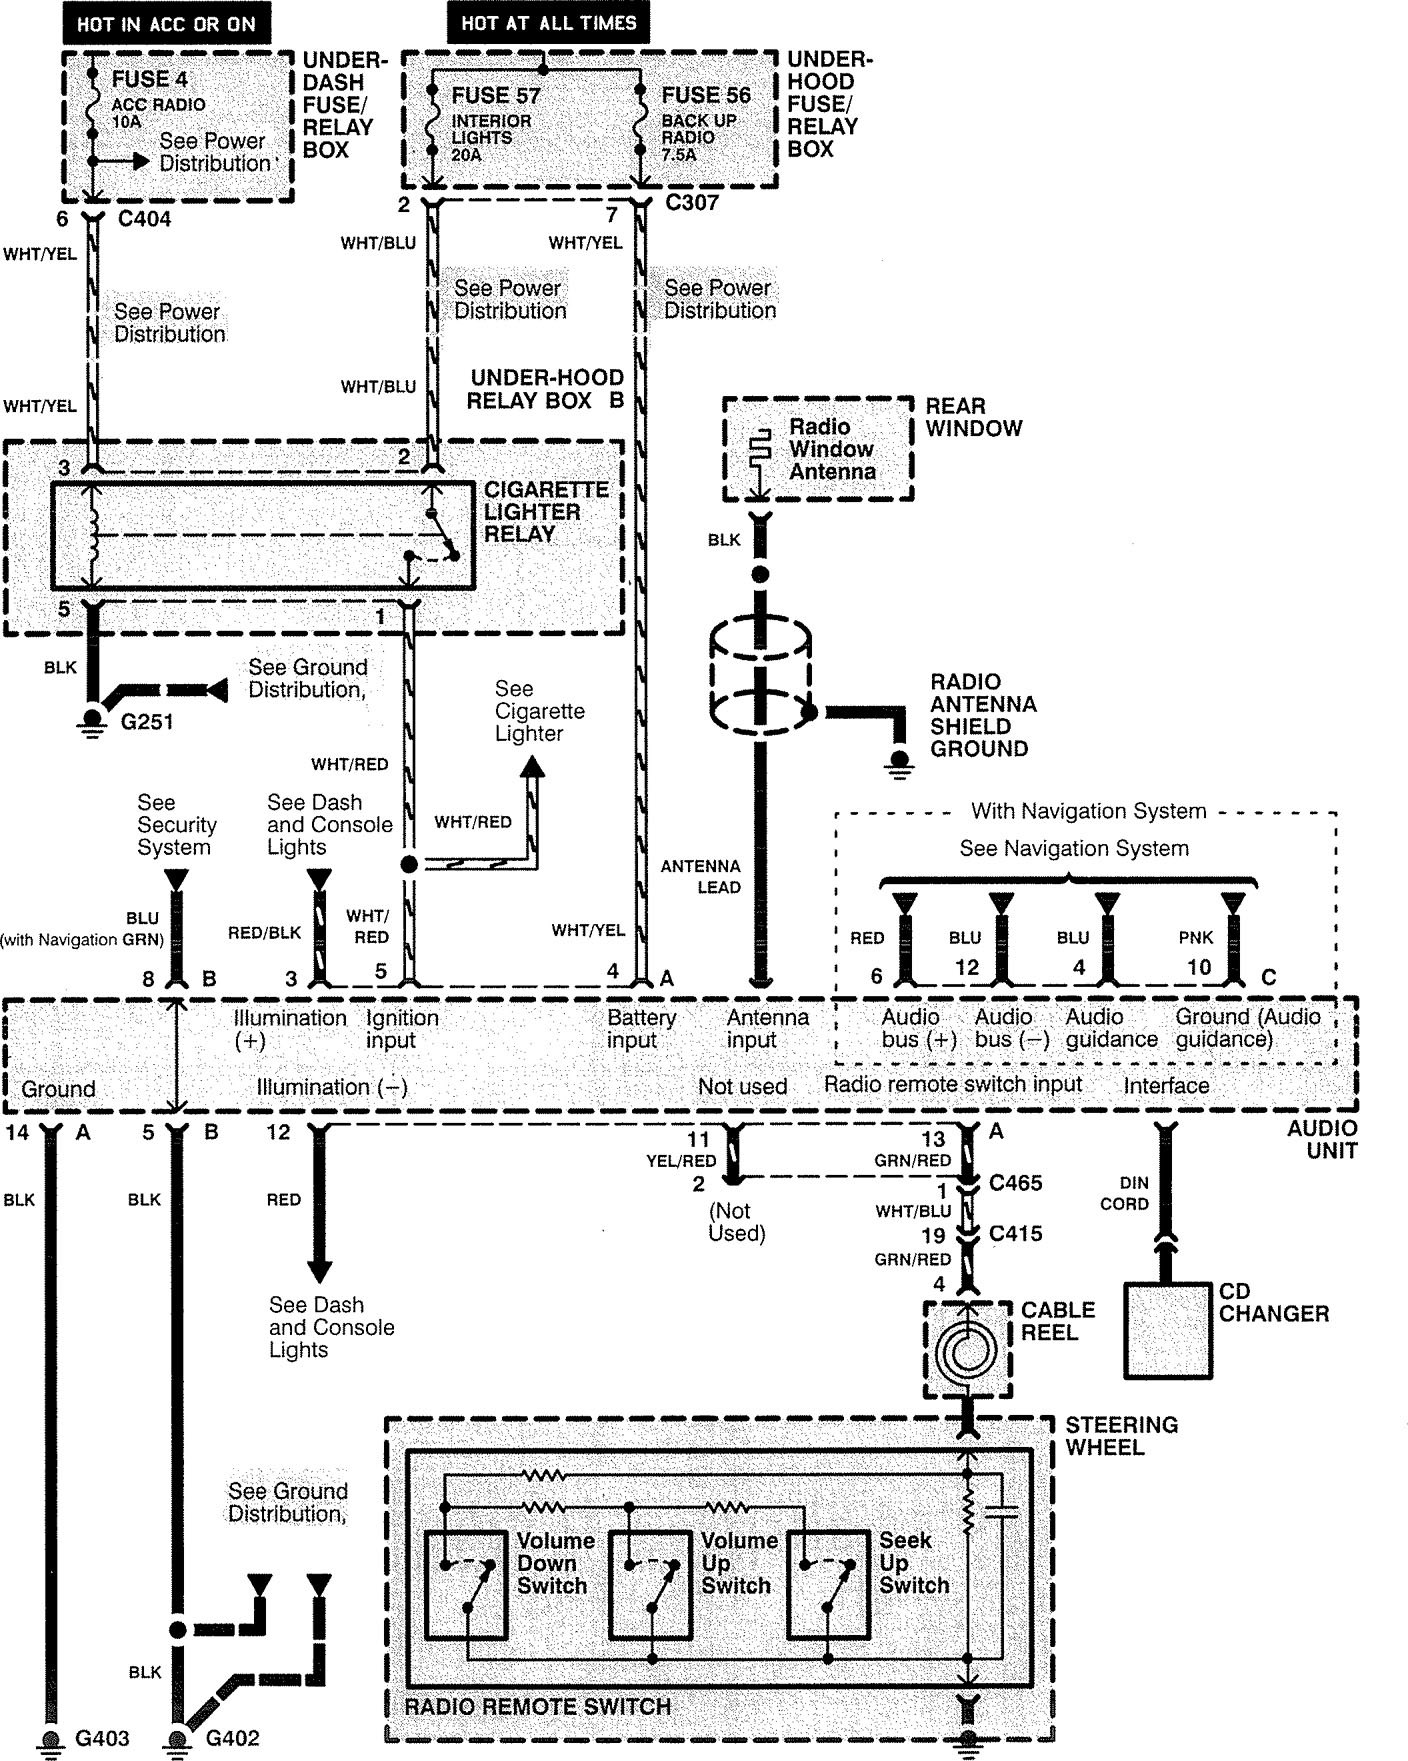 Great wiring diagram for 1997 acura rl photos electrical circuit